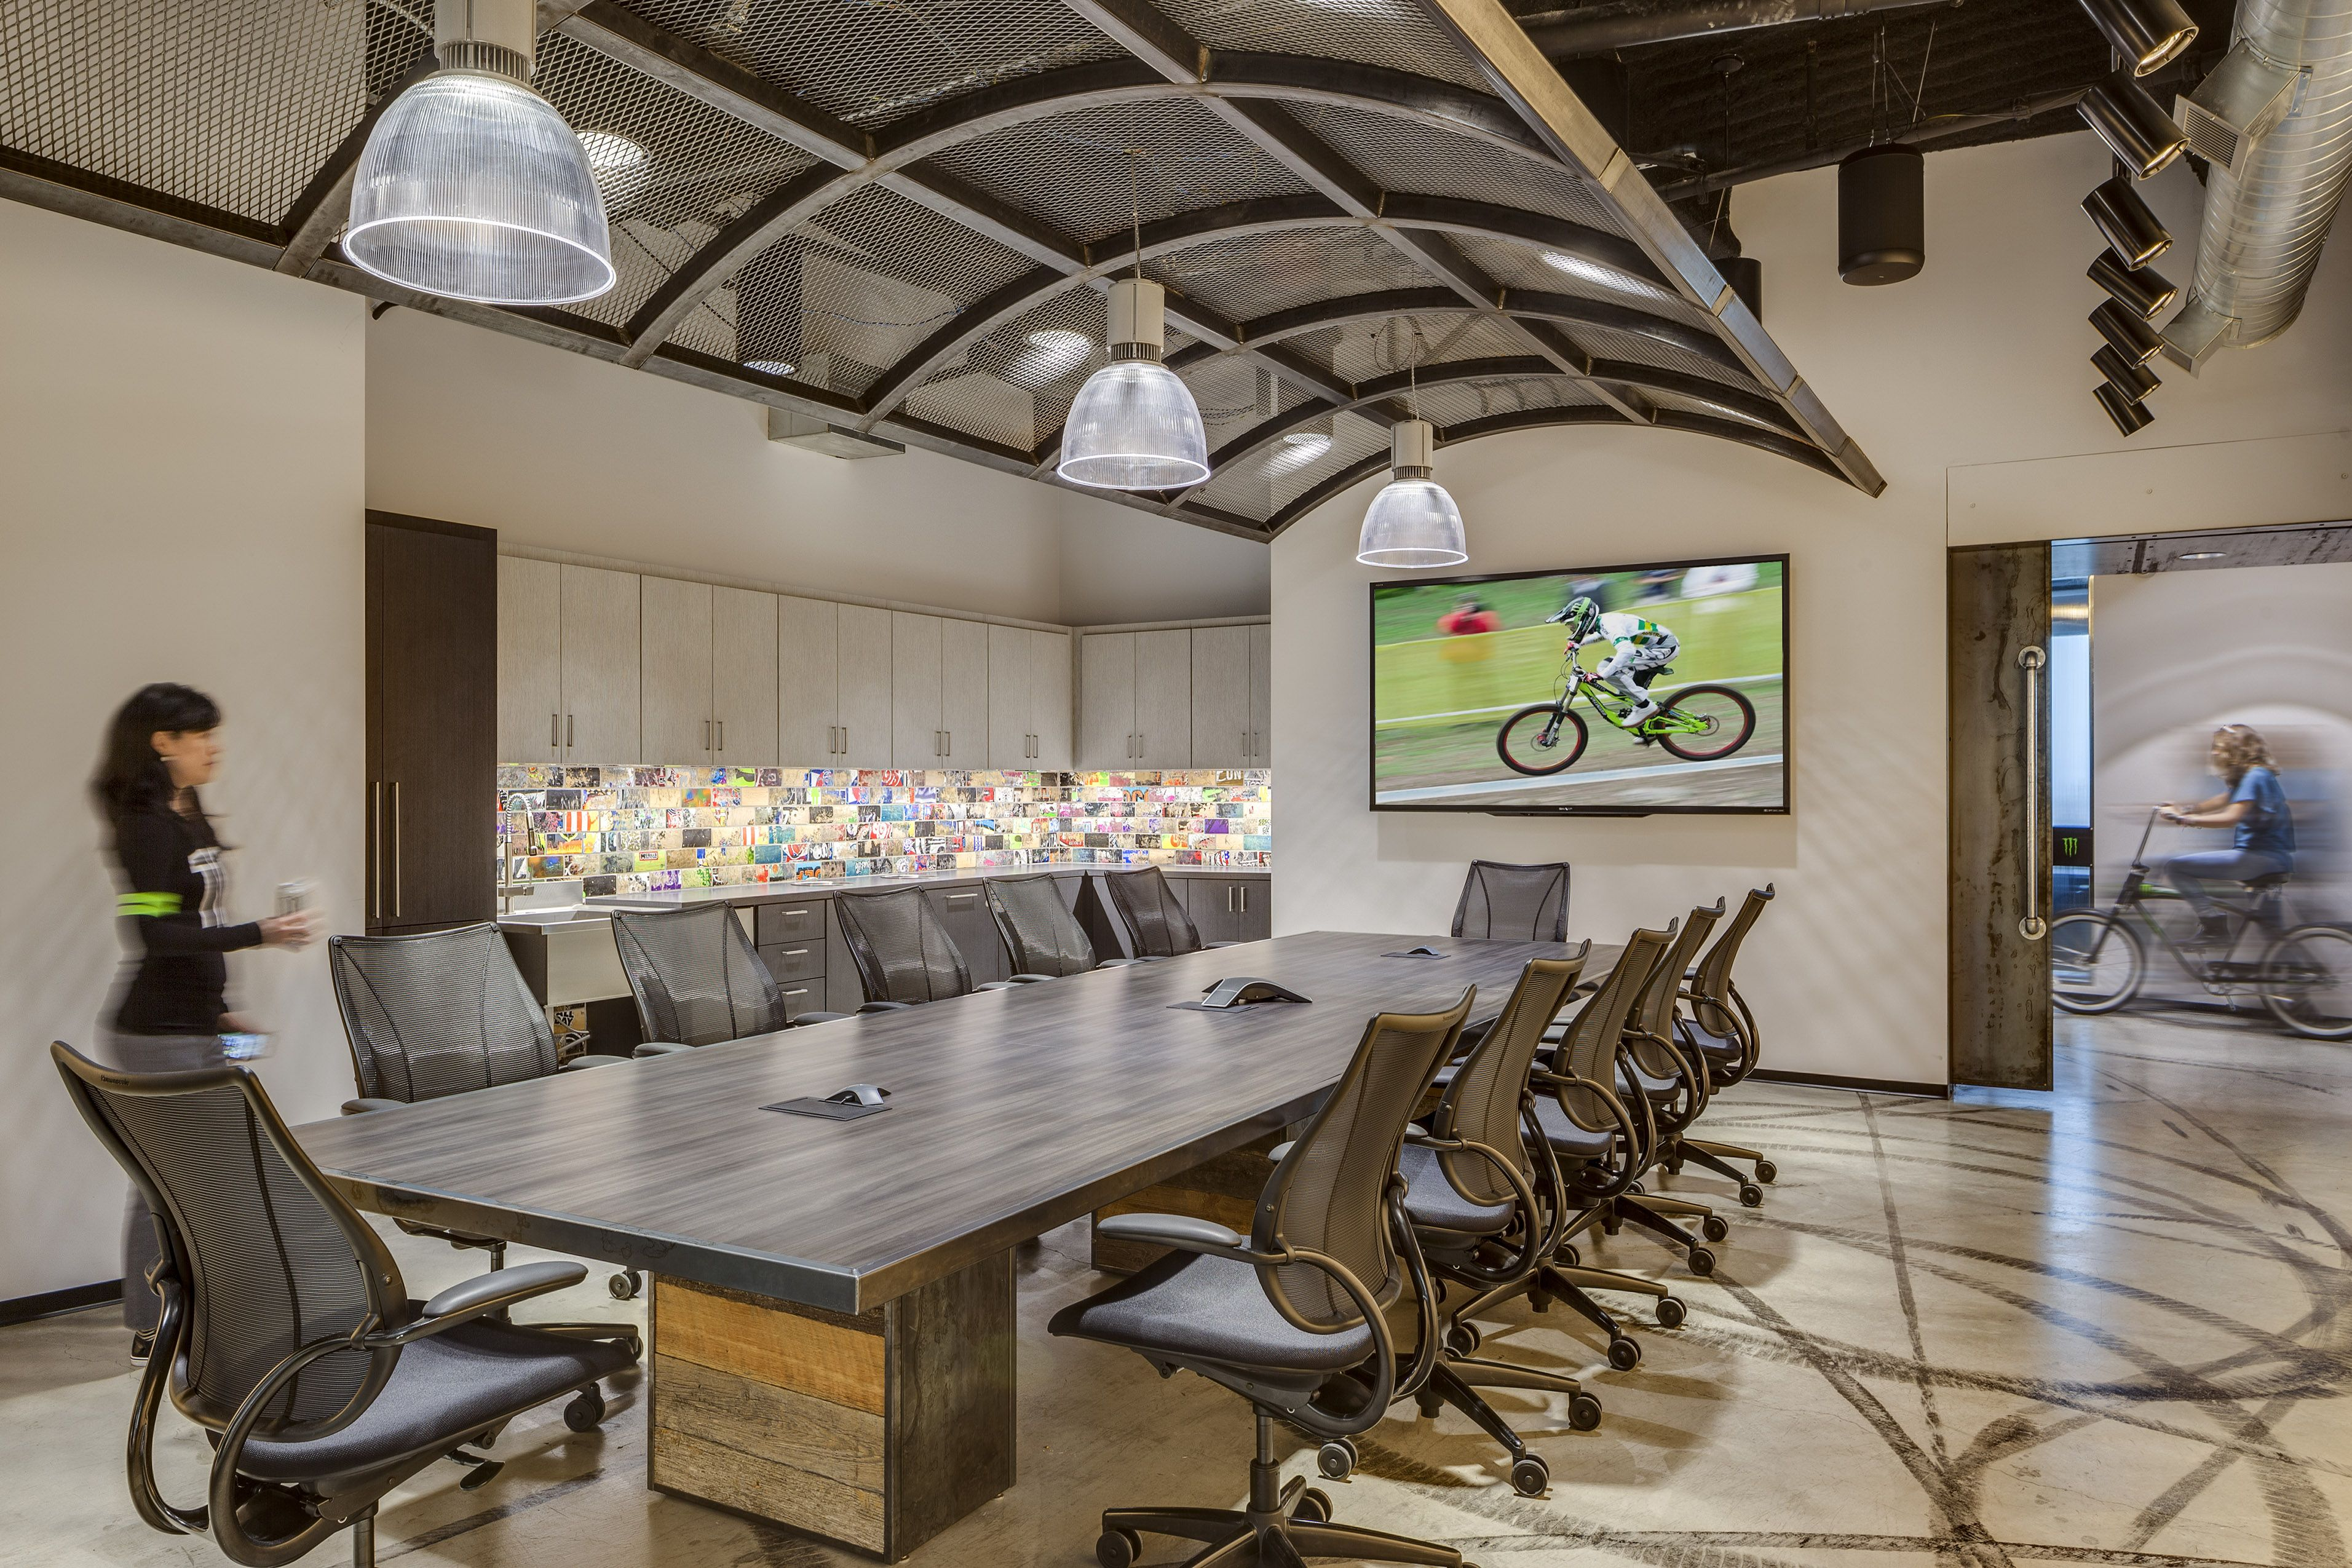 Monster energy headquarters conference room commercial interior design by h hendy associates - Monster energy corporate office ...